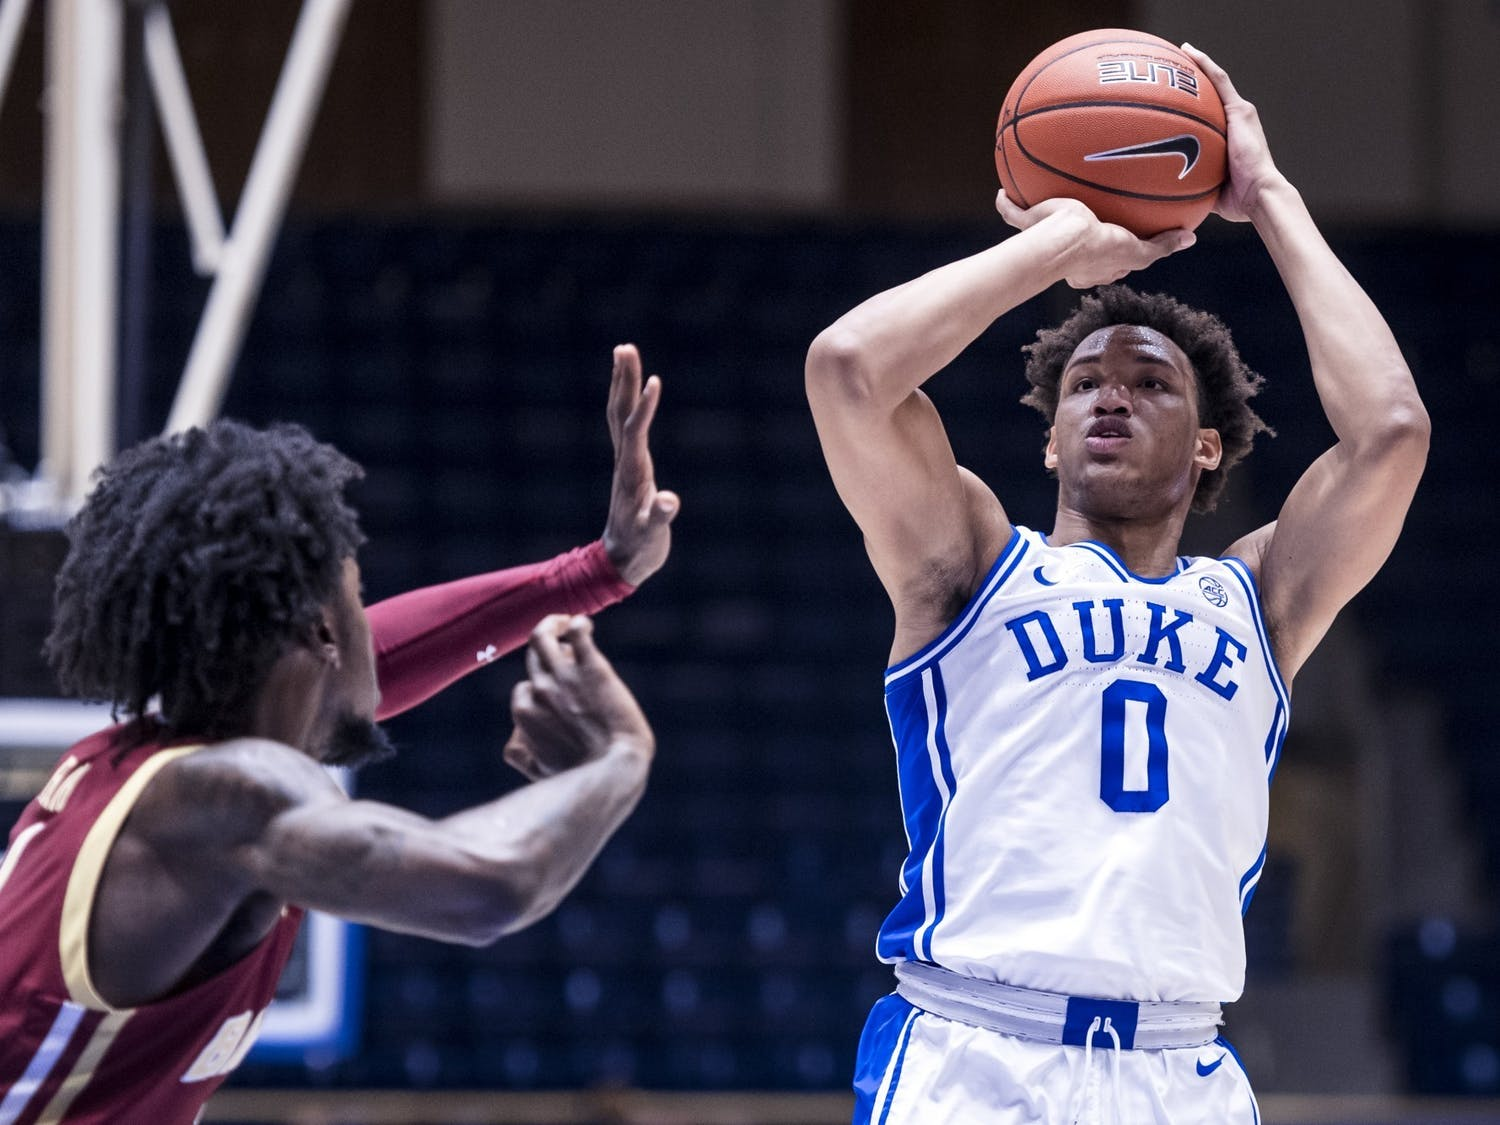 After a 25-point game against Boston College, Wendell Moore's rocky start continued against Wake Forest.